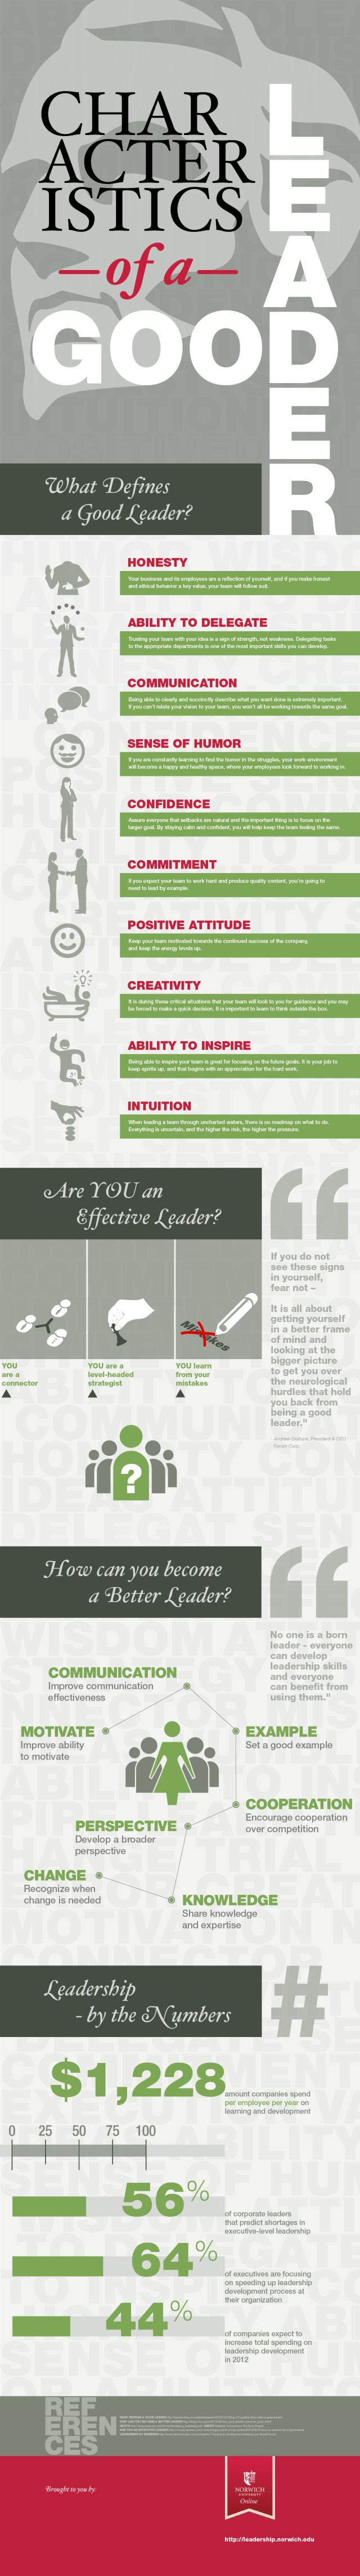 Characteristics of a good leader #infografia #infographic